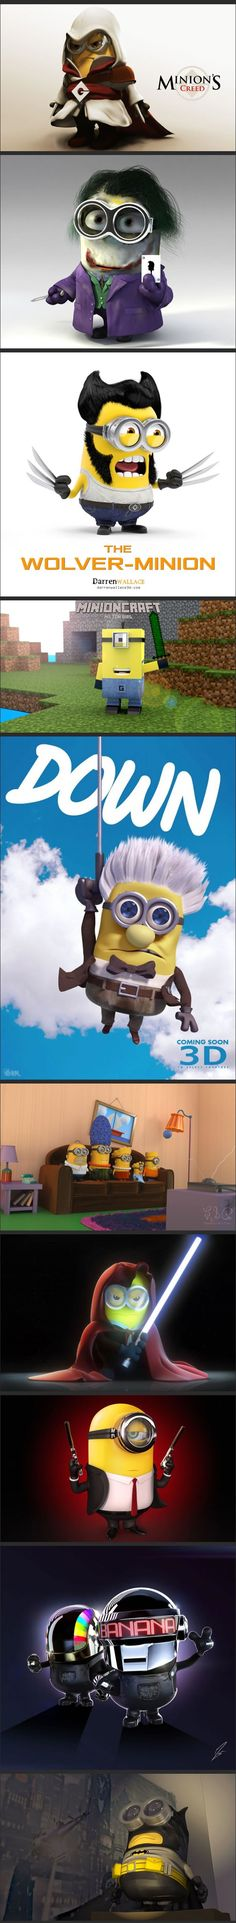 Minions movie characters ...